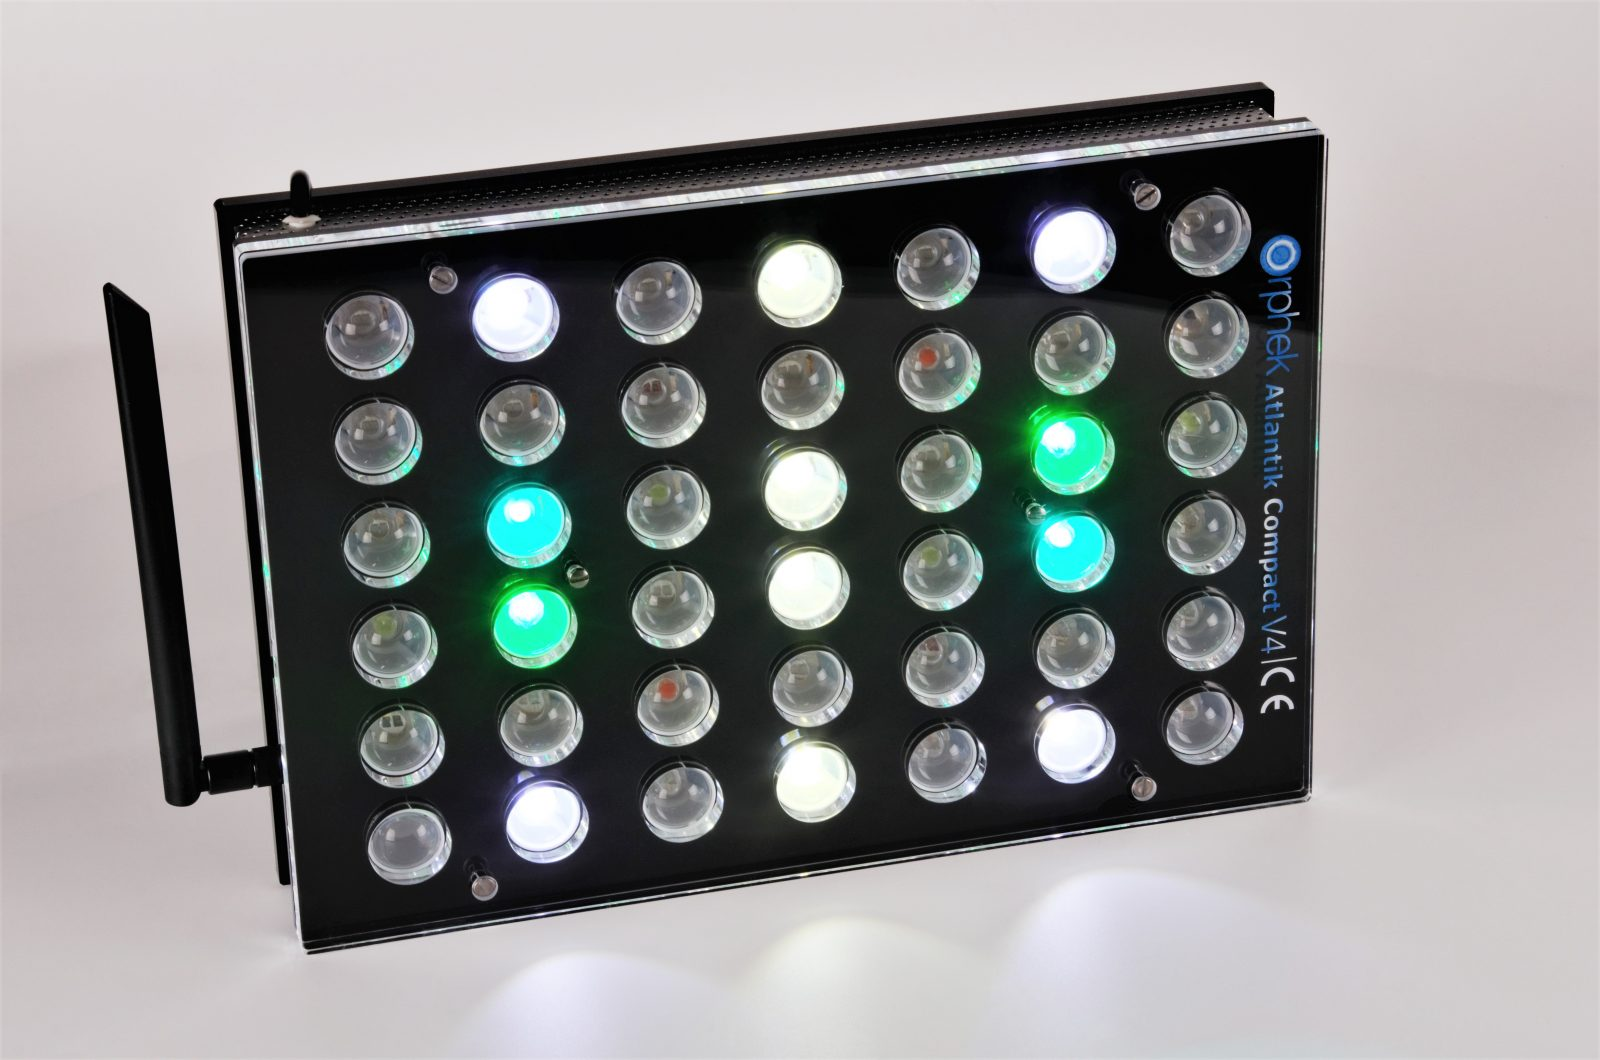 Orphek Aquarium LED Lighting Atlantik Compact V4 lig op kanaal 1